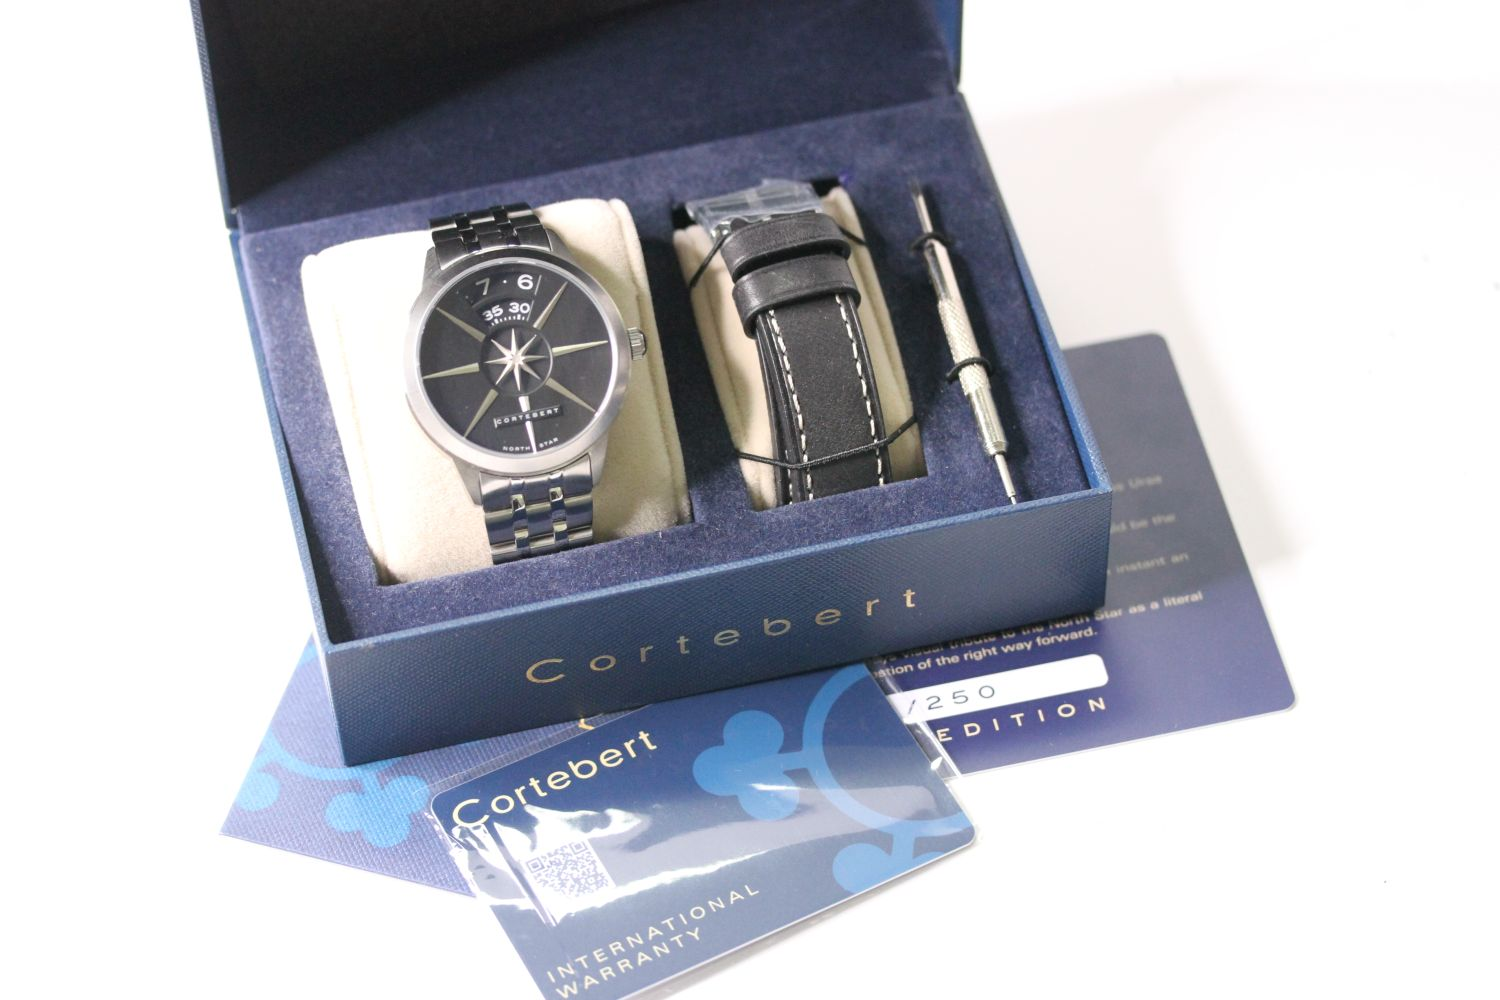 CORTEBERT CELESTIAL NORTH STAR WITH BOX AND PAPERS lIMITED EDITION, circular black dial, day and